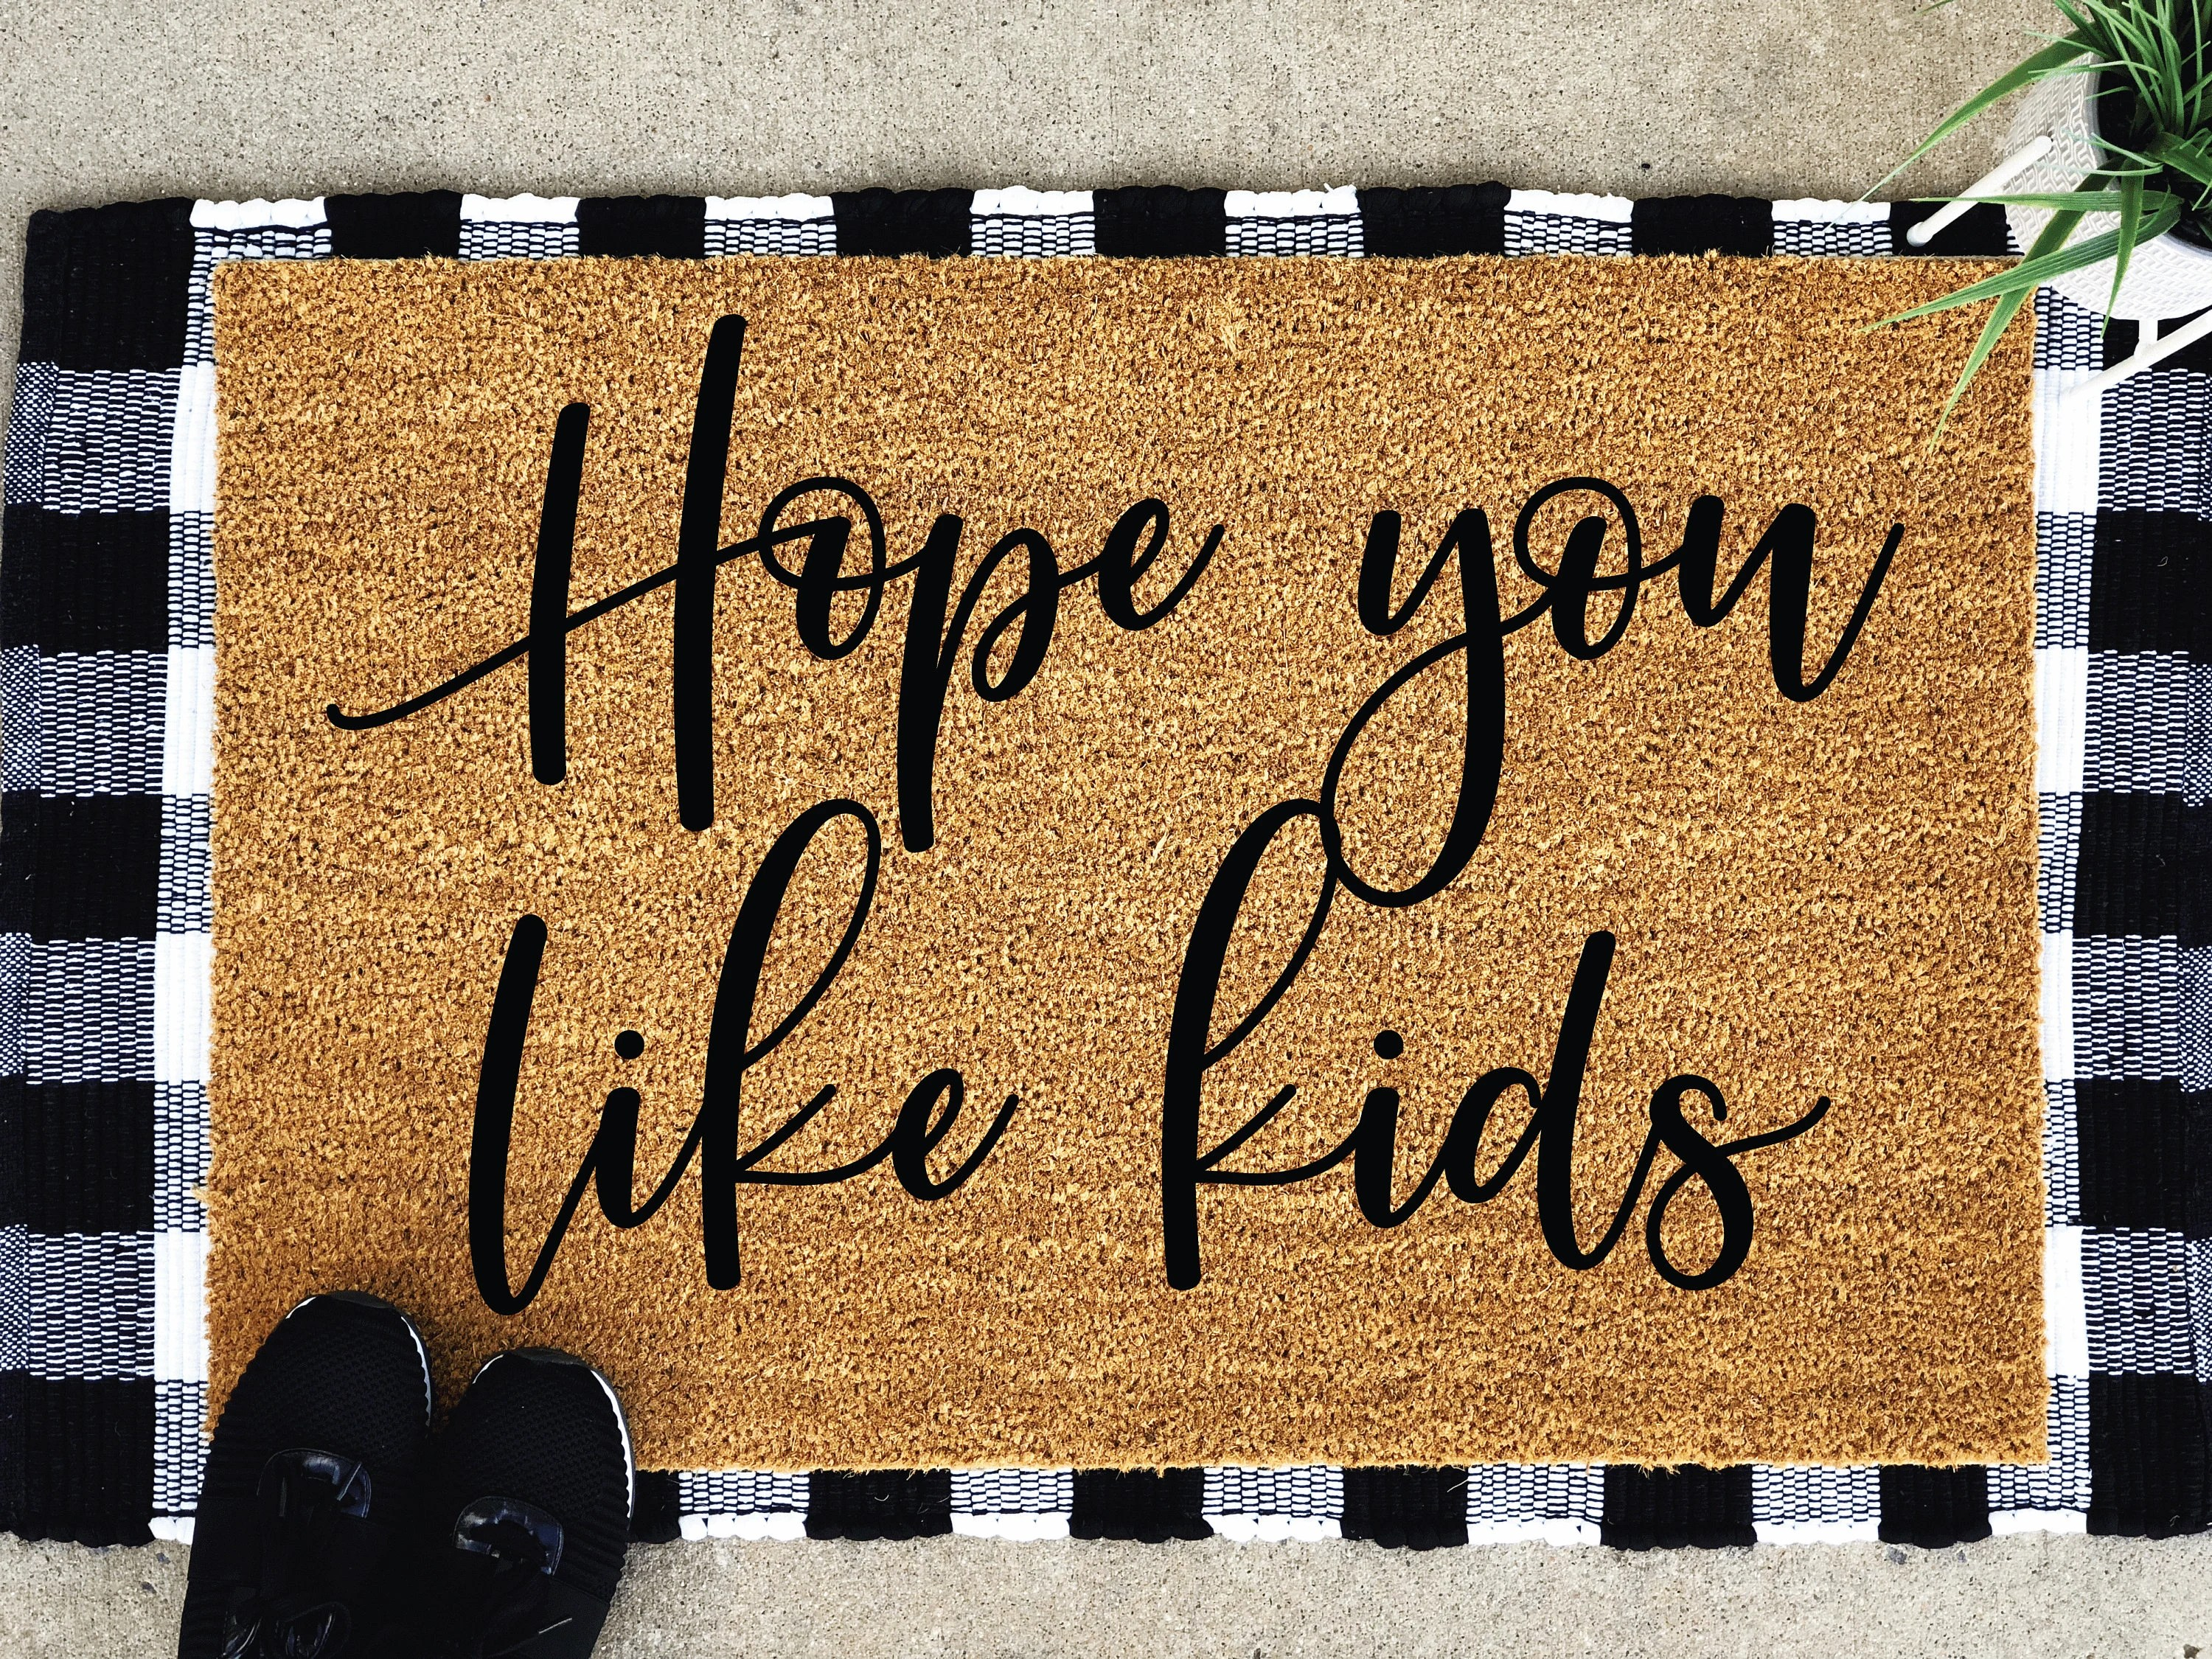 Big W Floor Mat Hope You Like Kids Doormat Large Doormat Custom Door Mat Big Family Gift Custom Doormat Door Mat Custom Welcome Mat Housewarming Gift